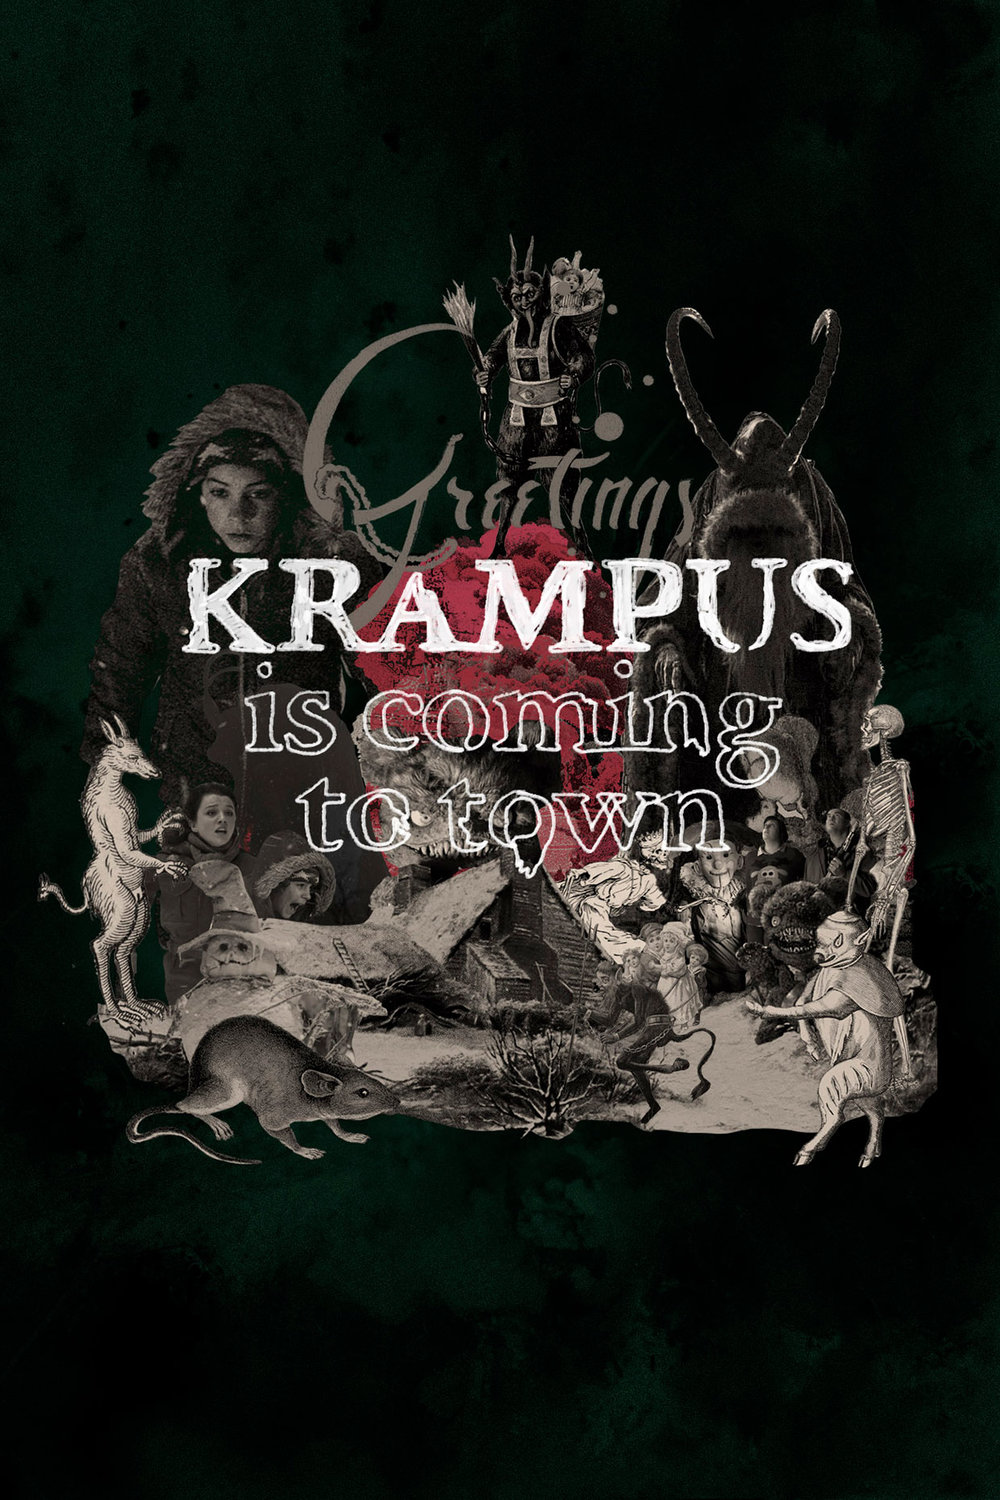 Maxomatic-Krampus-5.jpg